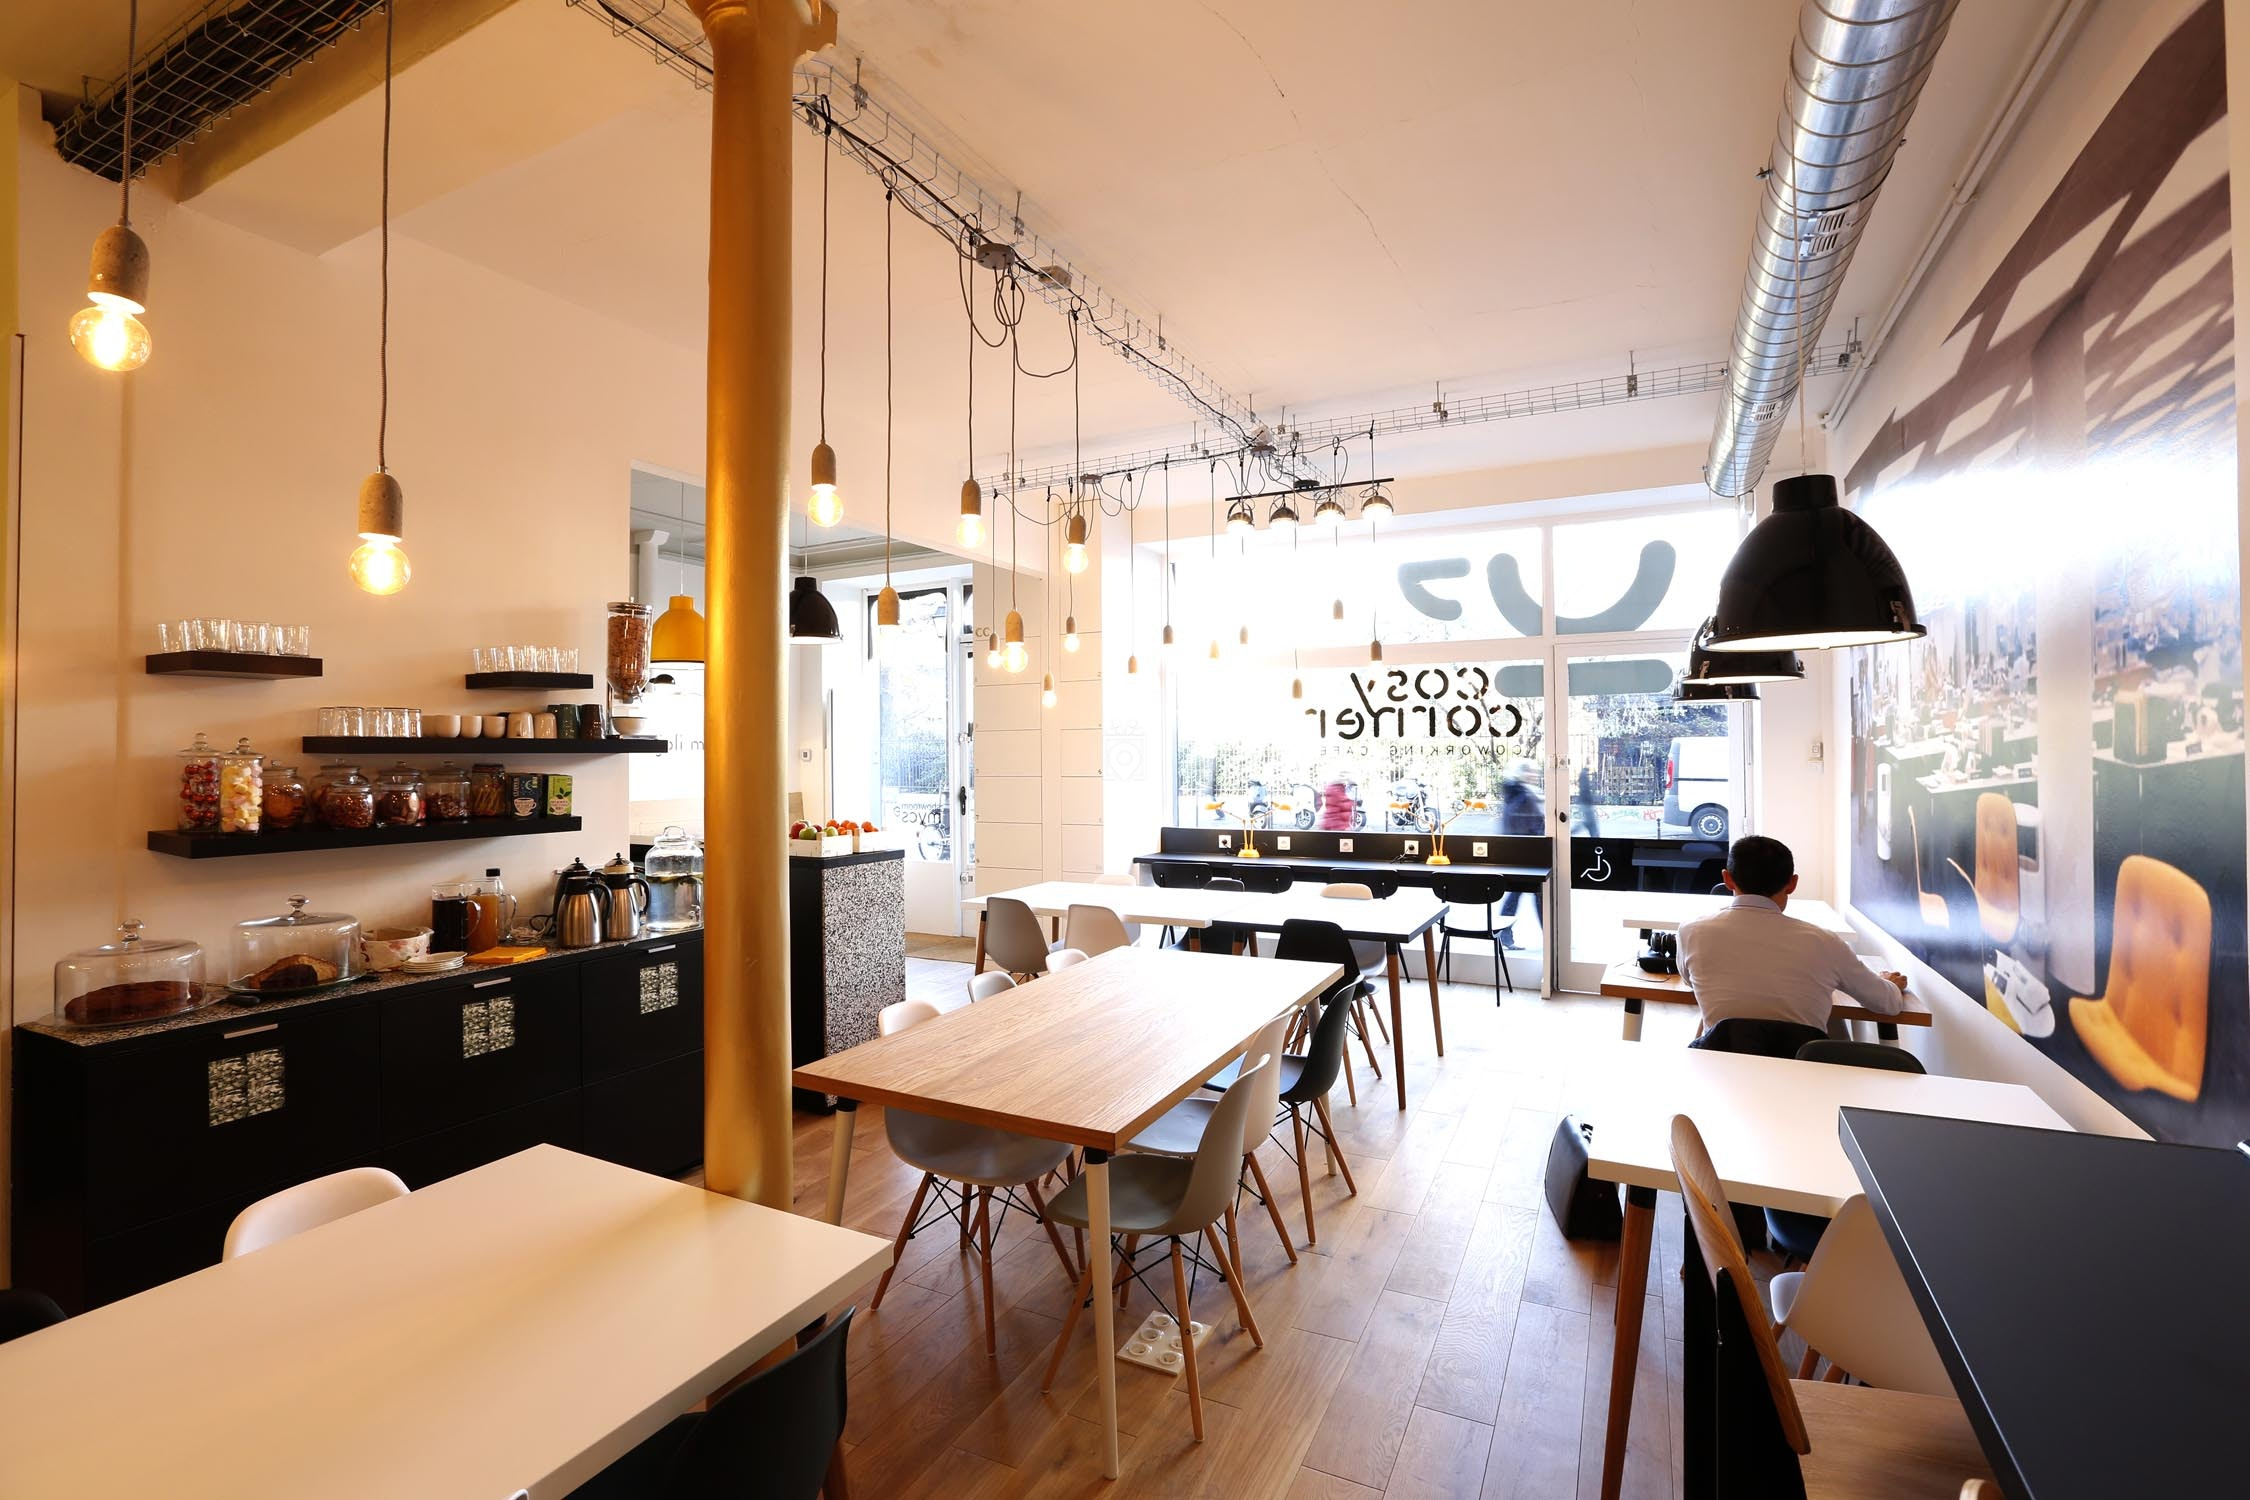 Oppdatert COSY CORNER, Paris - Read Reviews & Book Online HW-93